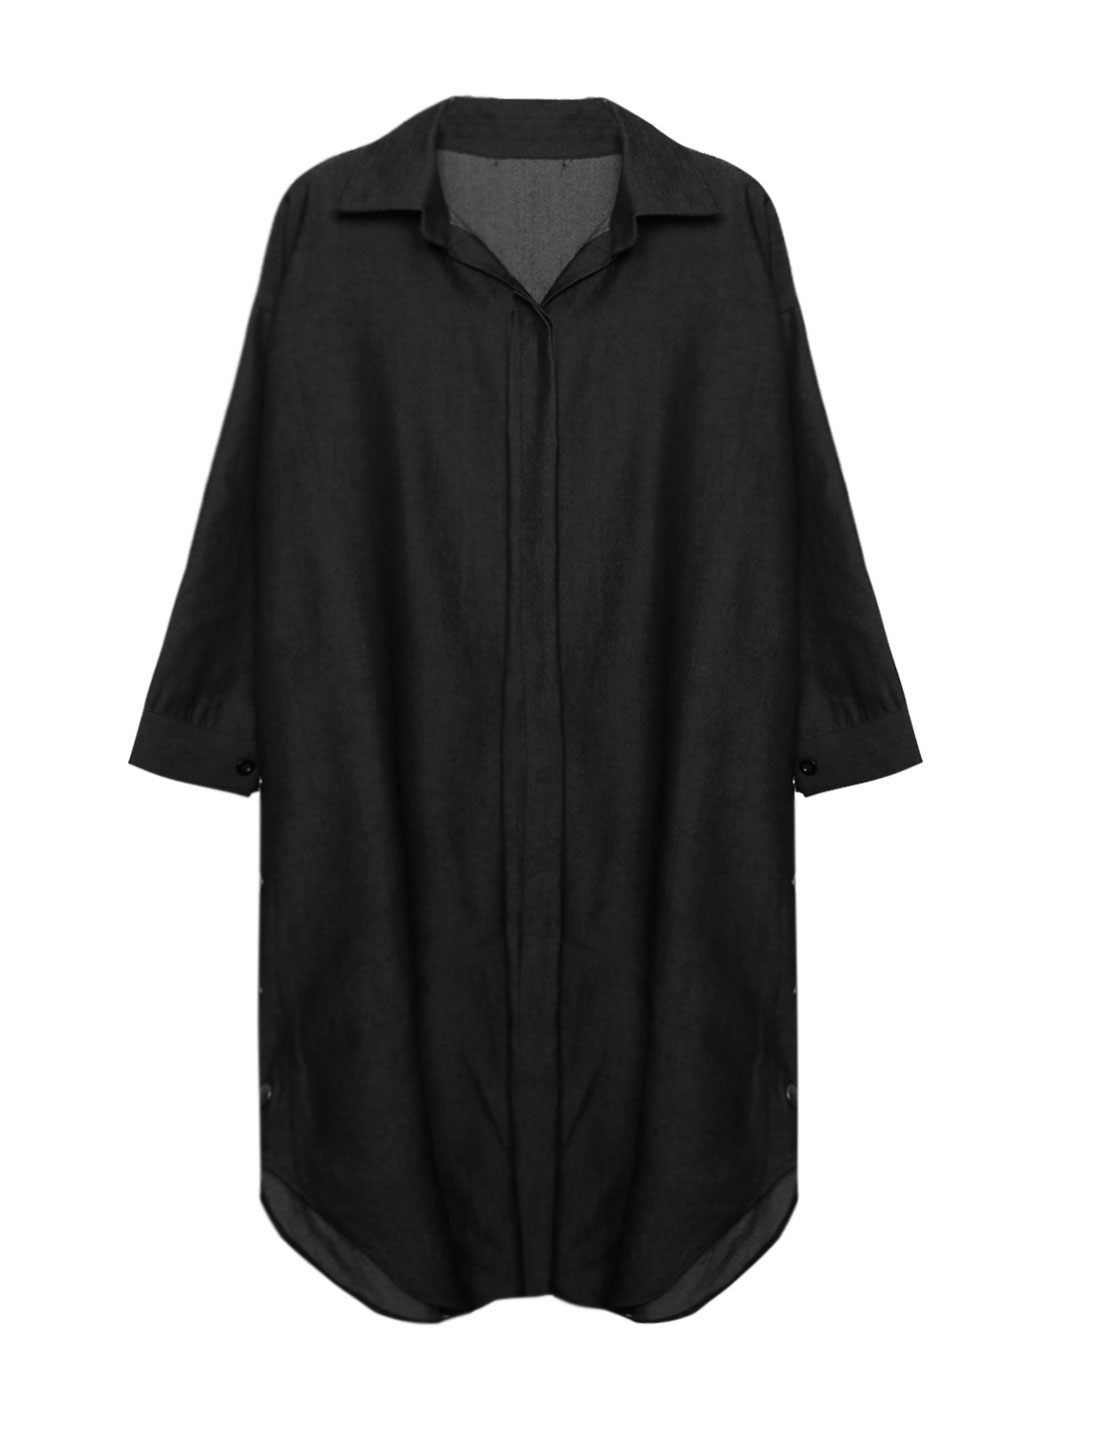 Women Snap Buttoned Sides Batwing Loose Tunic Blouse Black S